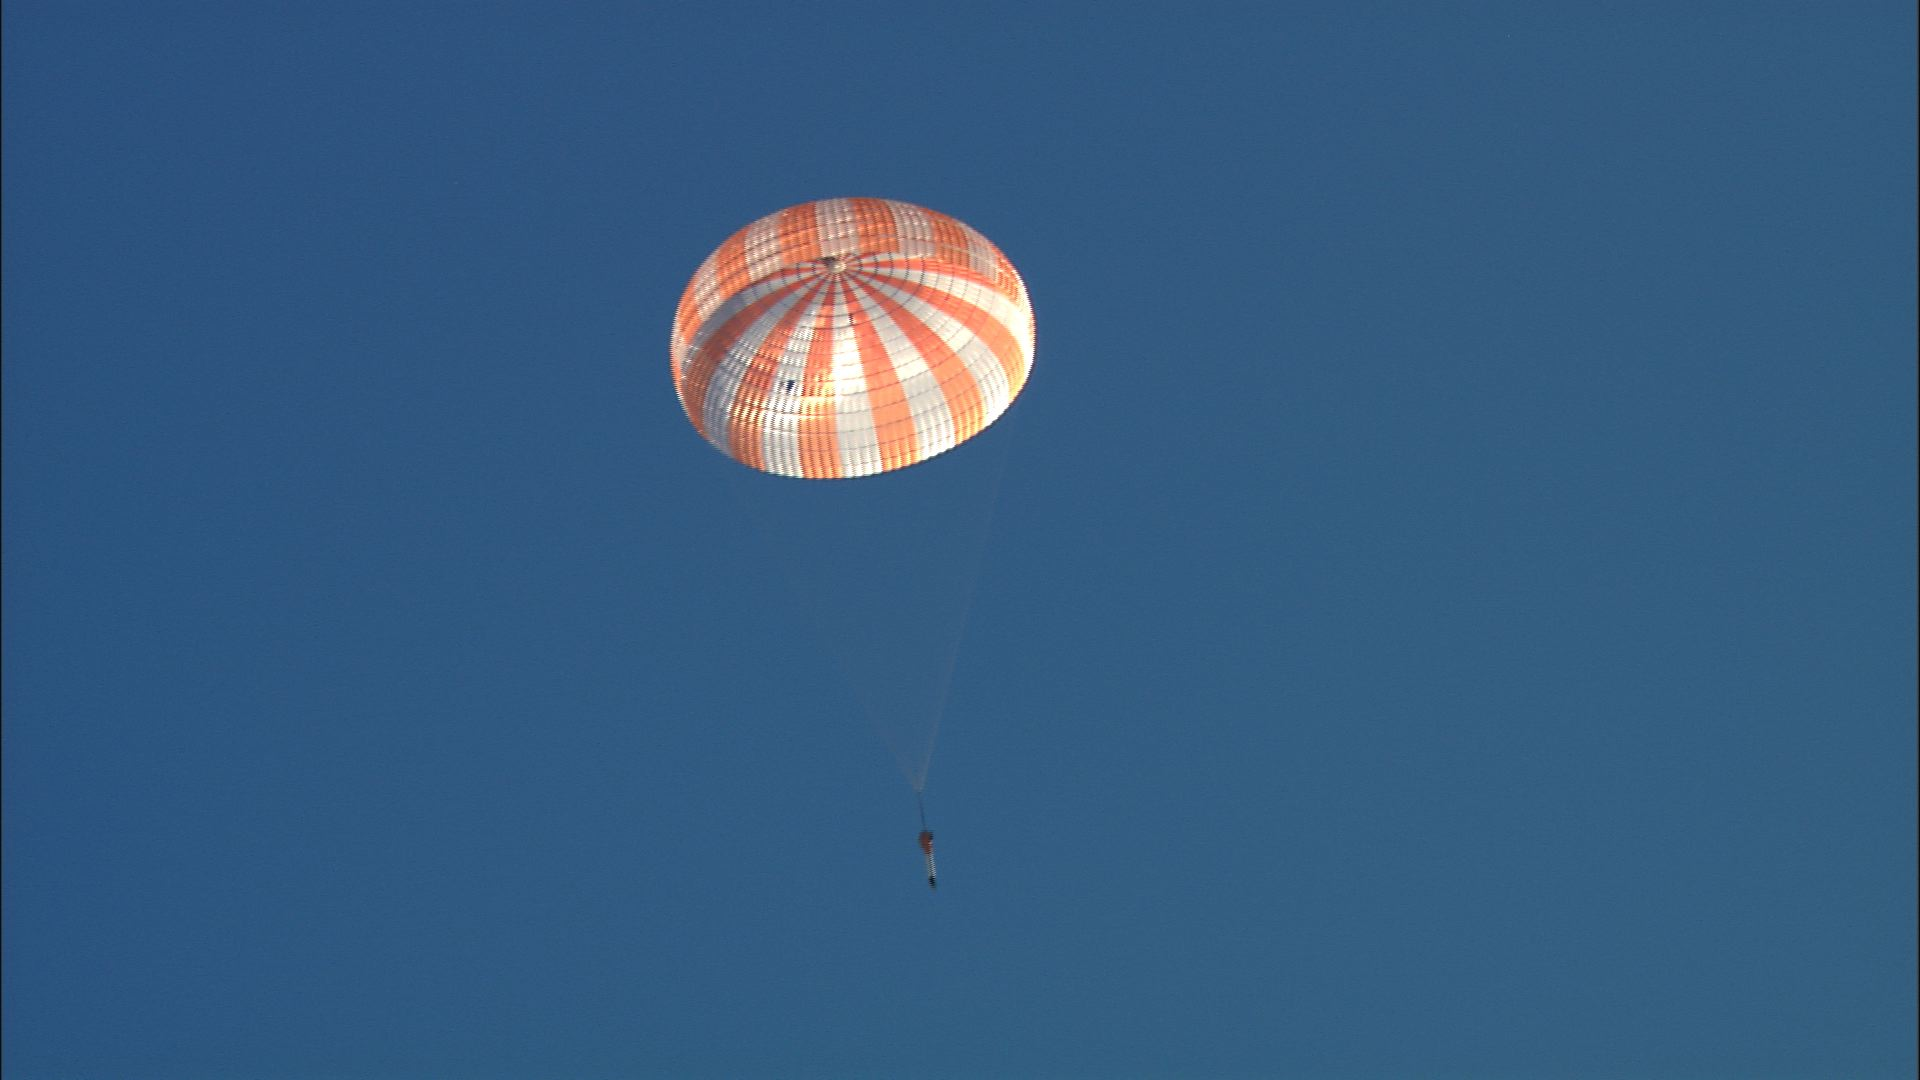 raft parachute nasa - photo #20